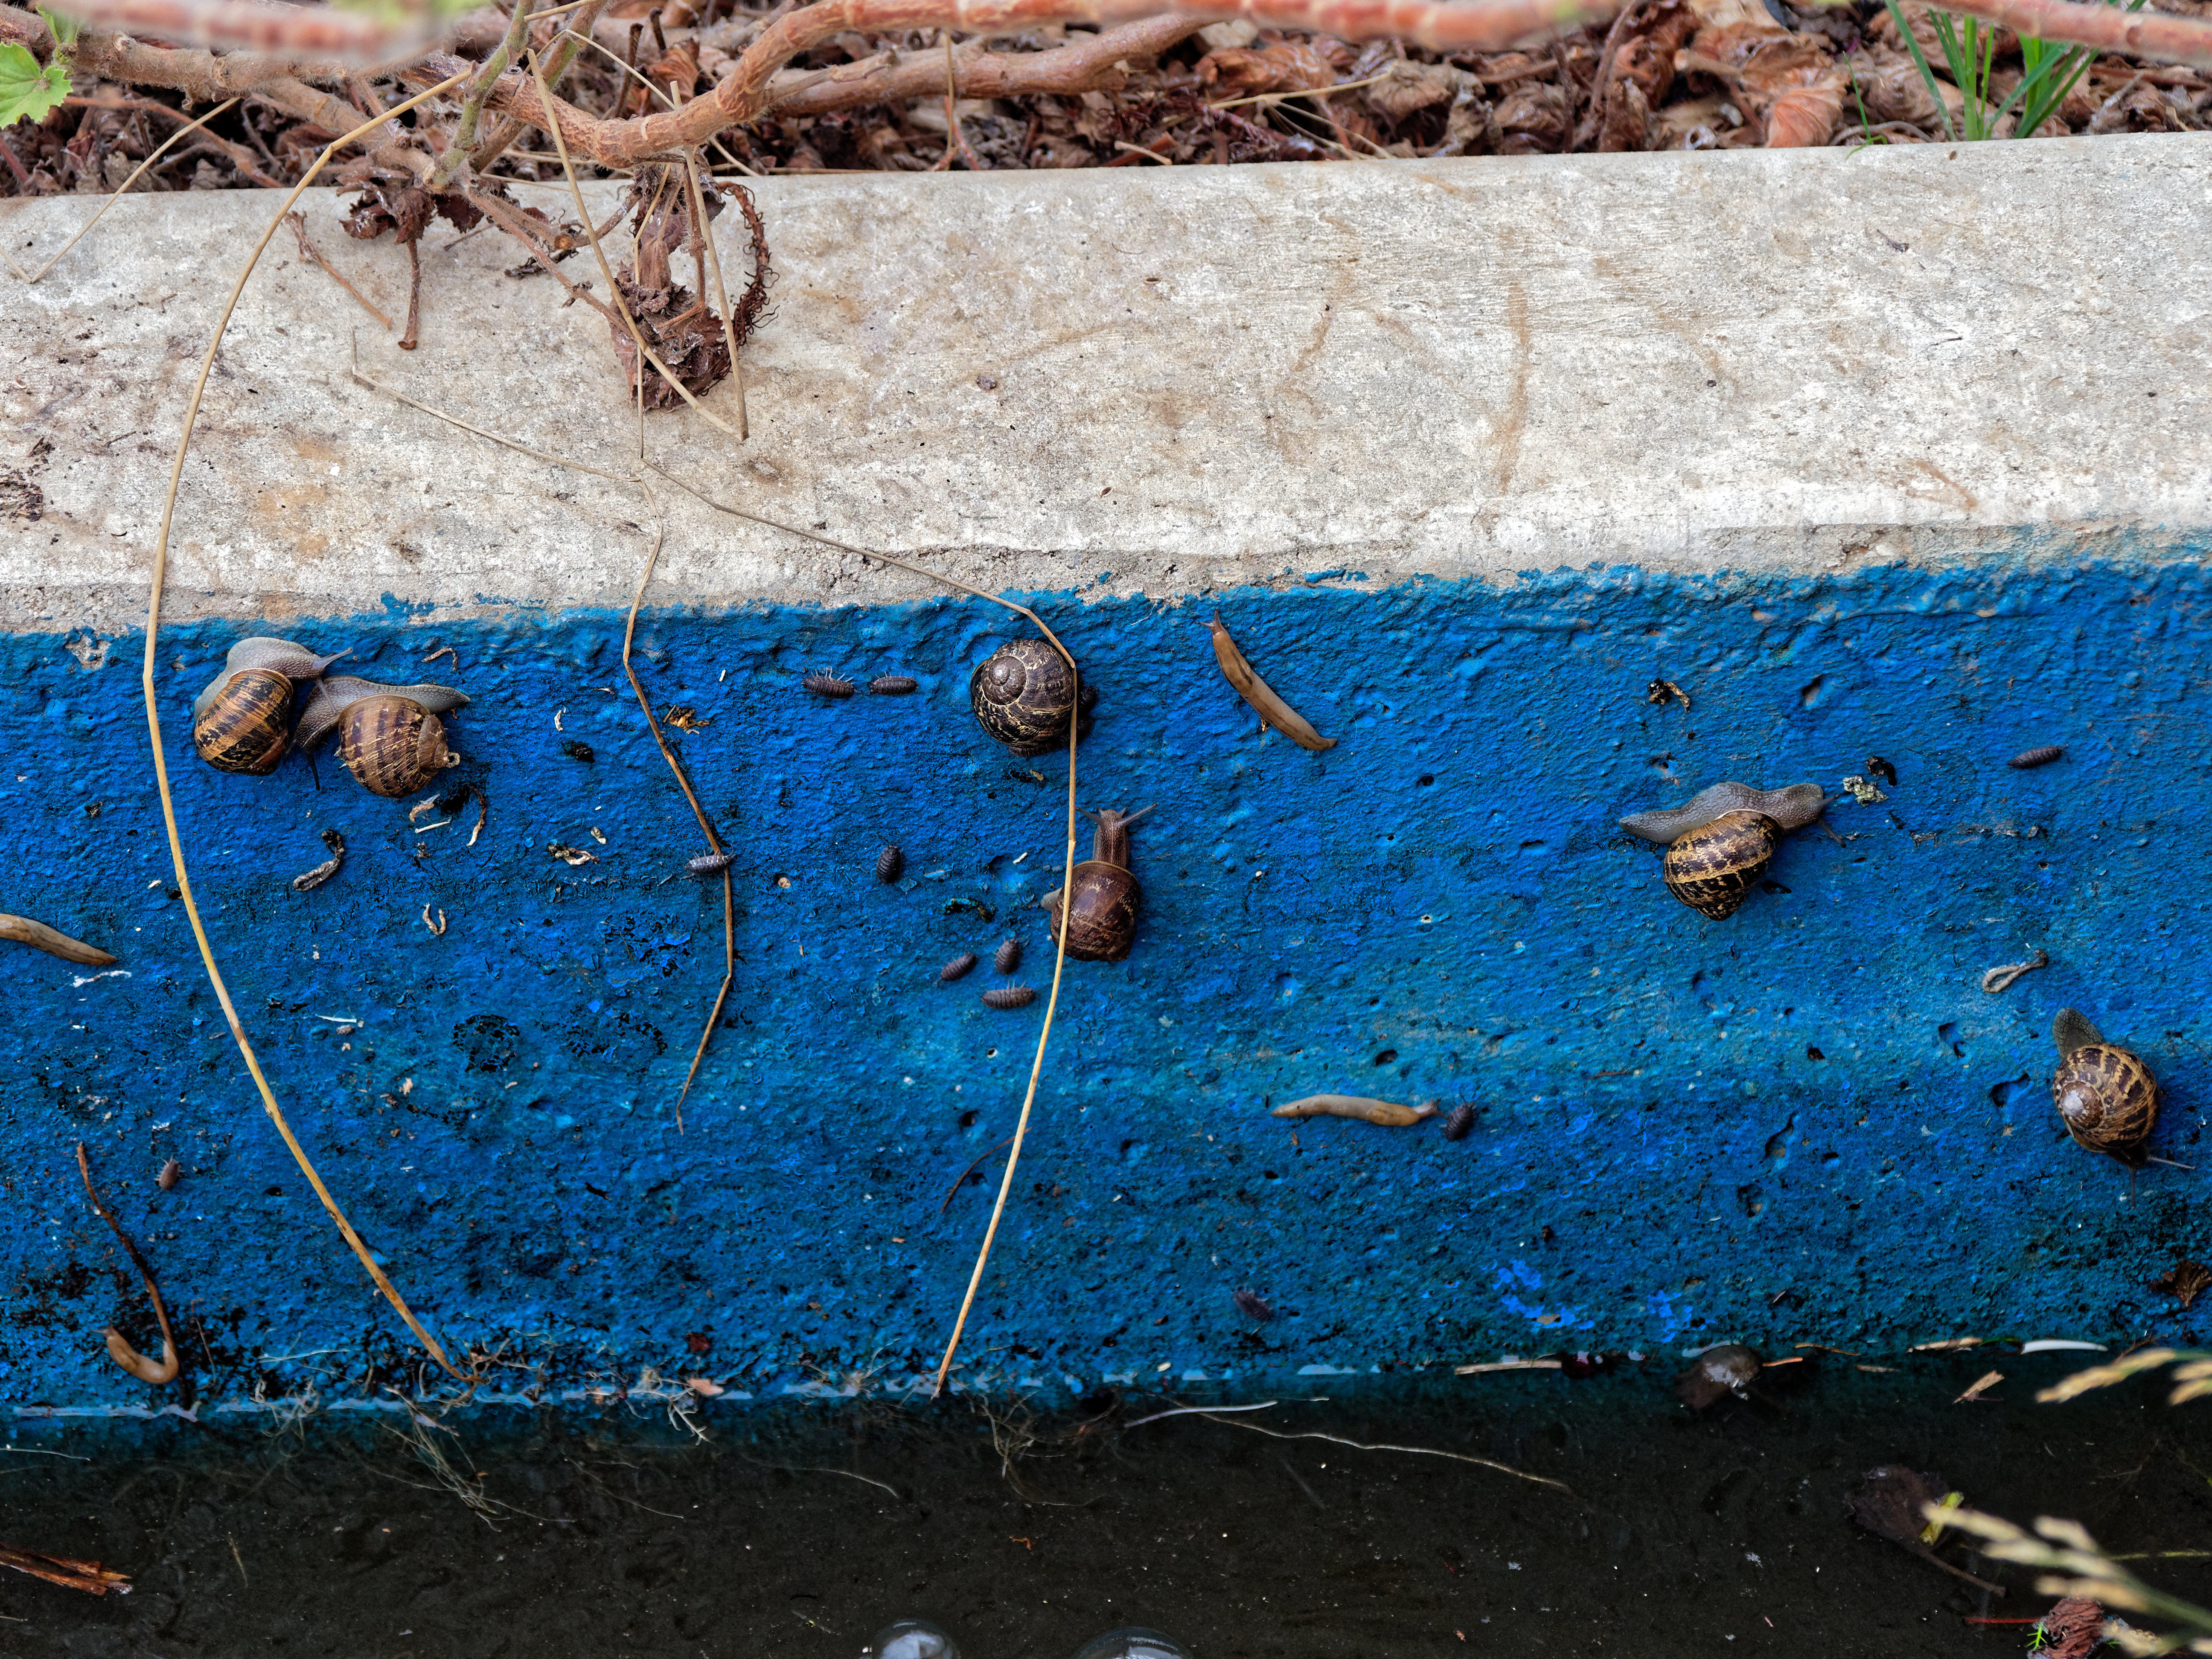 This should be Snails-1.jpeg.  Is it missing?